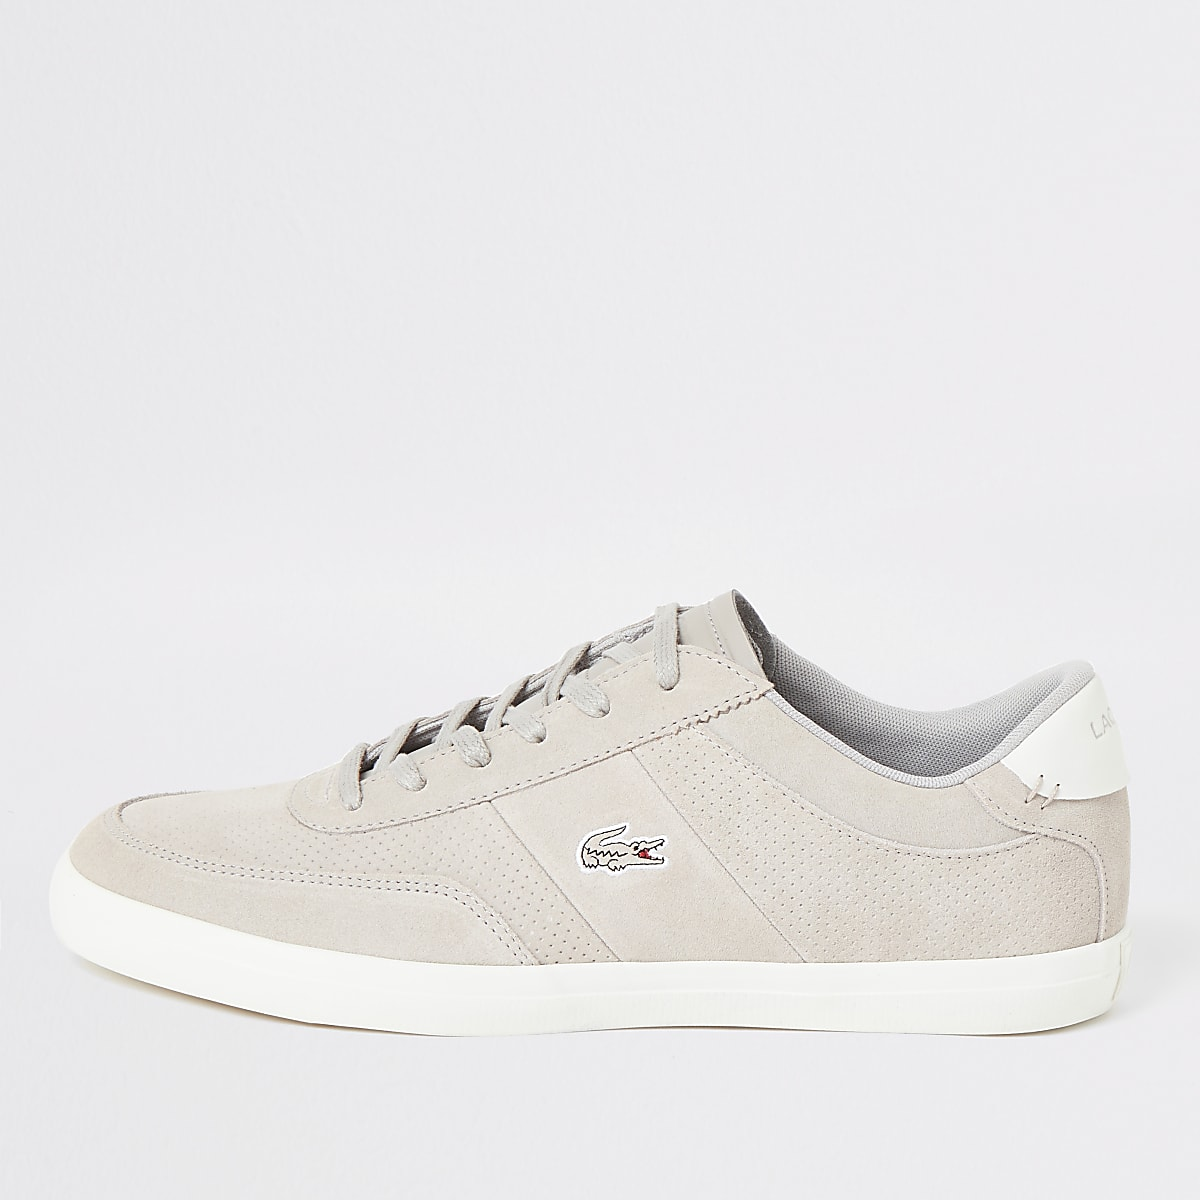 buy popular 24e53 1b29a Sneakers Courtmaster Sneakers Courtmaster Courtmaster Grijze Lacoste  Lacoste Grijze Schoenen Schoenen Lacoste gvf7Yyb6